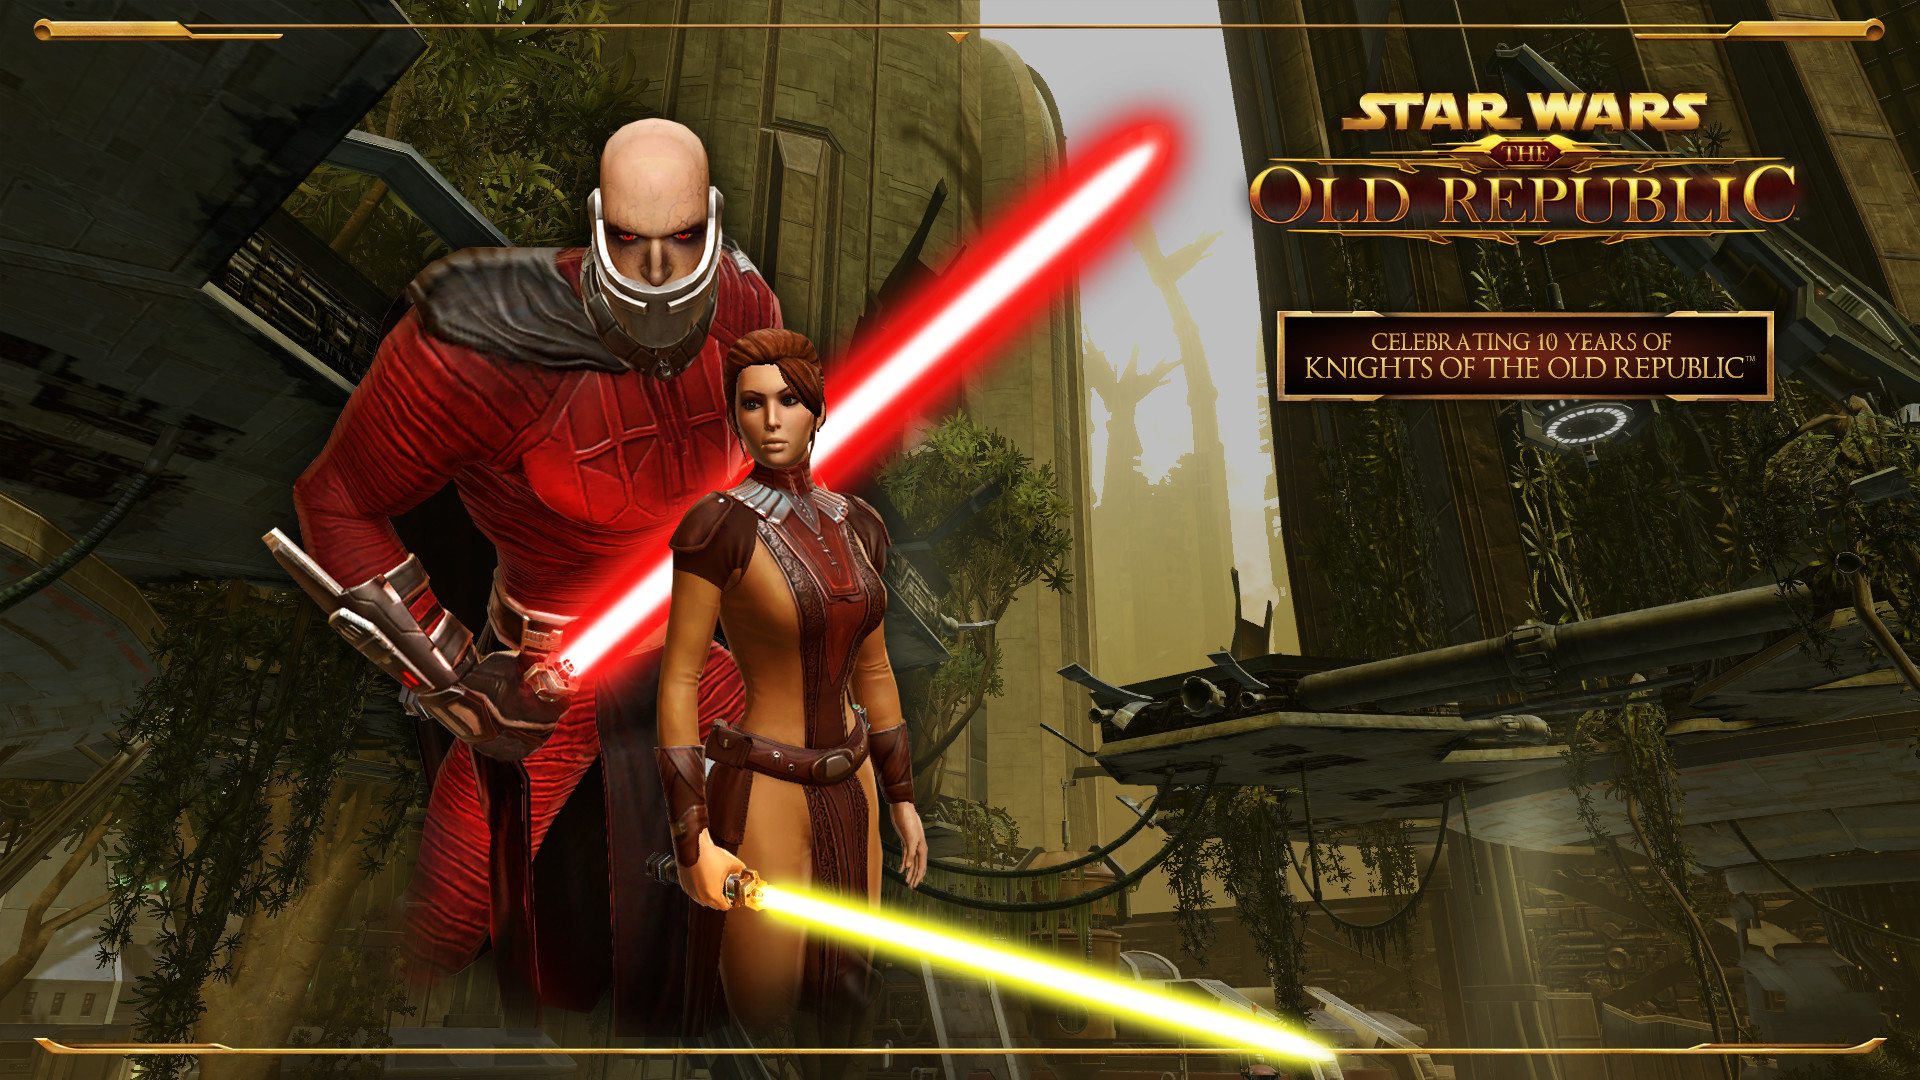 1920x1080 download these commemorative knights of the old republic wallpapers